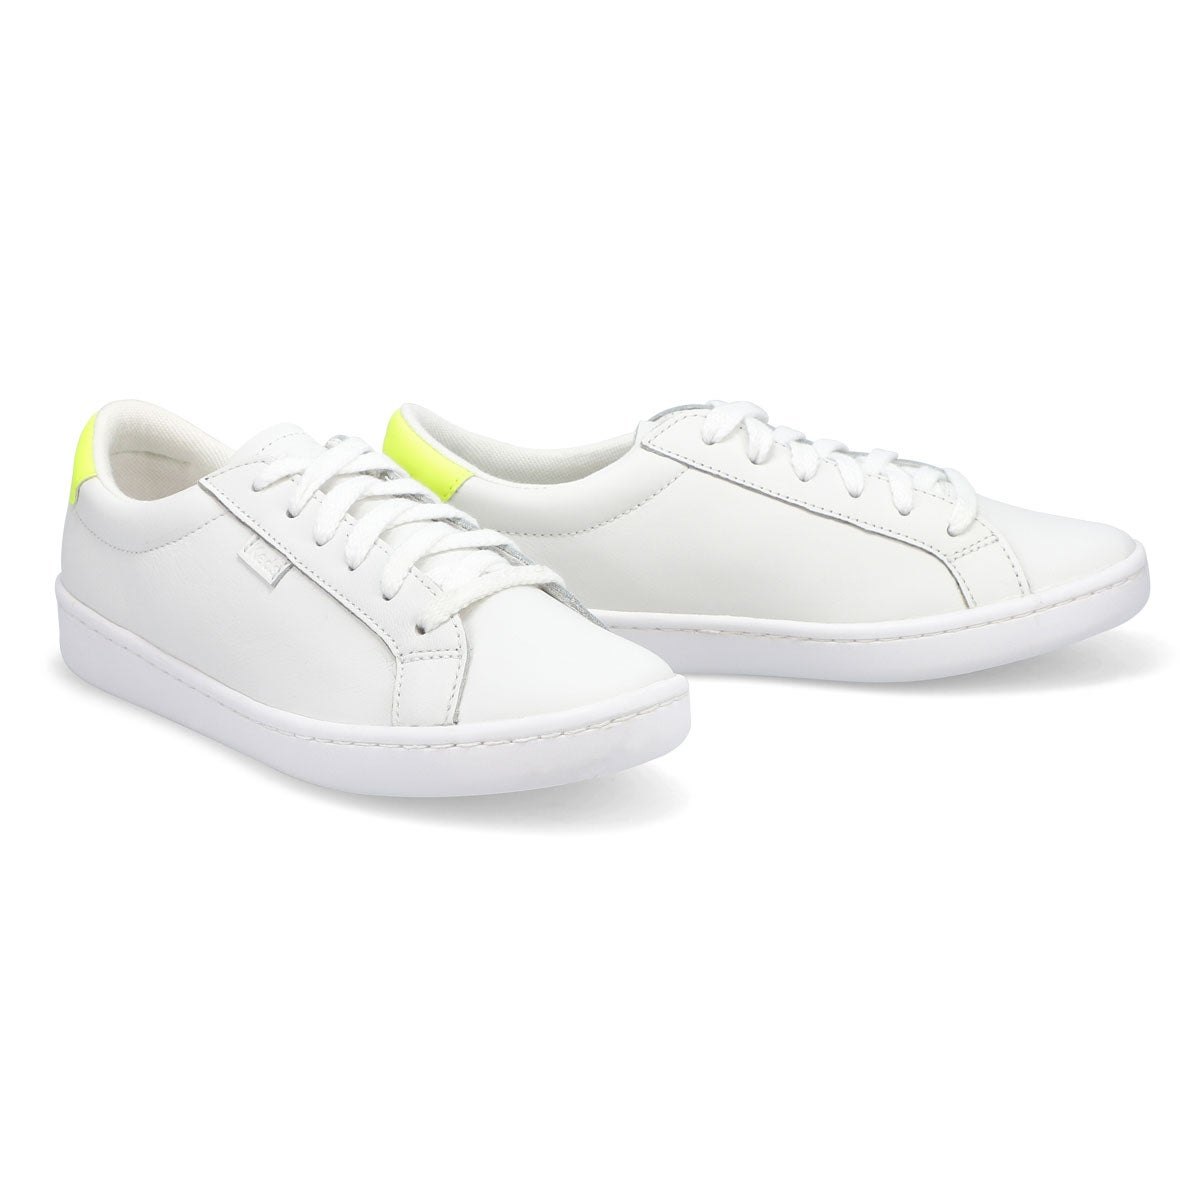 Women's Ace Leather Sneaker - White /Yellow